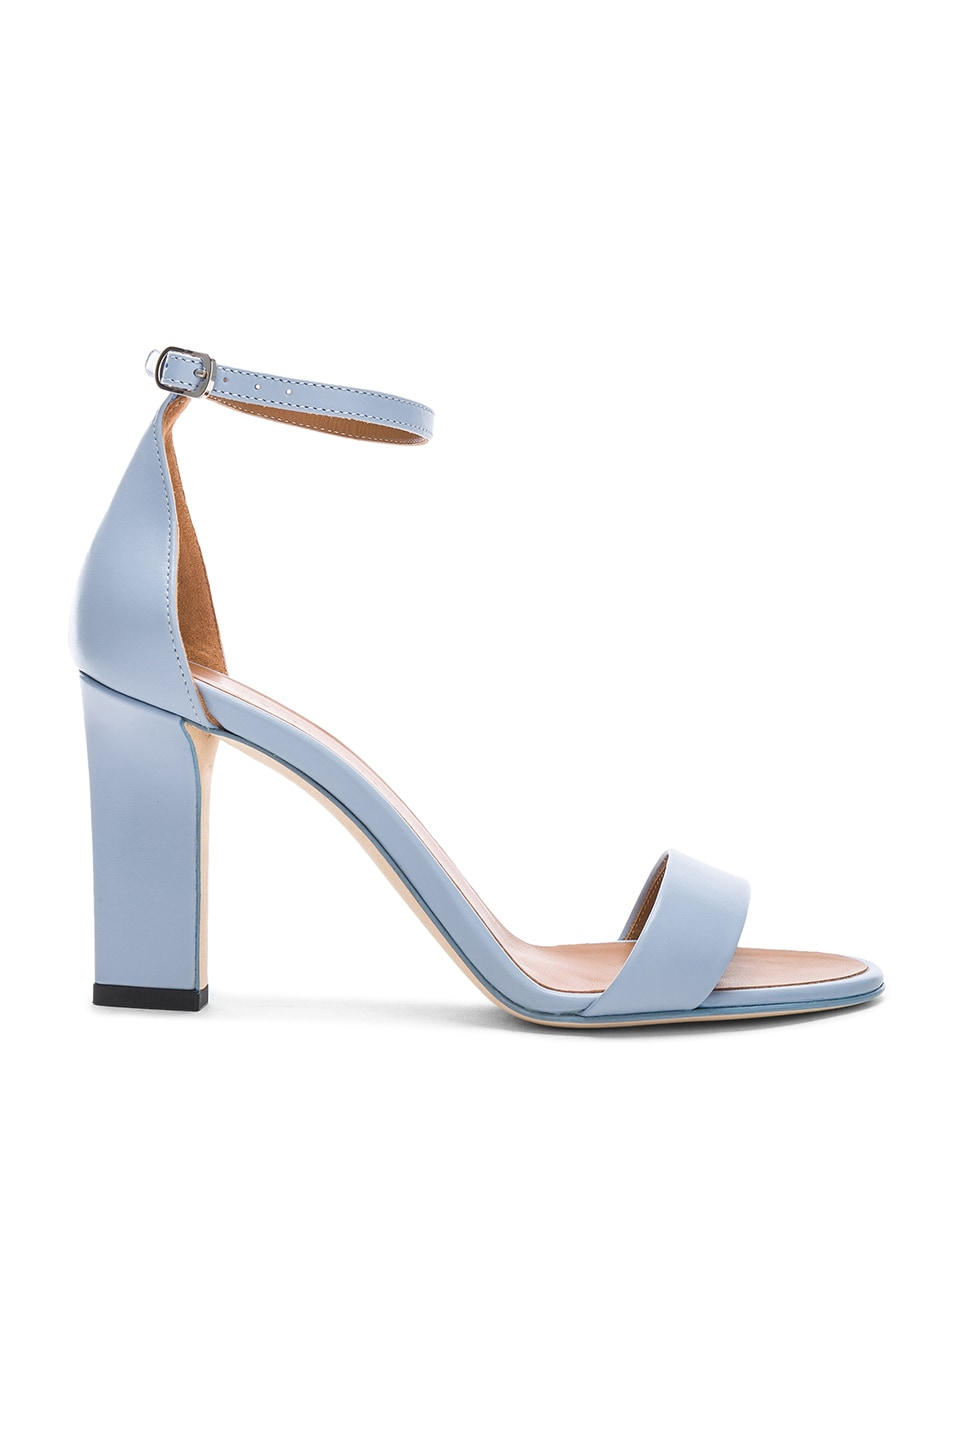 Image 1 of Victoria Beckham Anna Sandal in Baby Blue